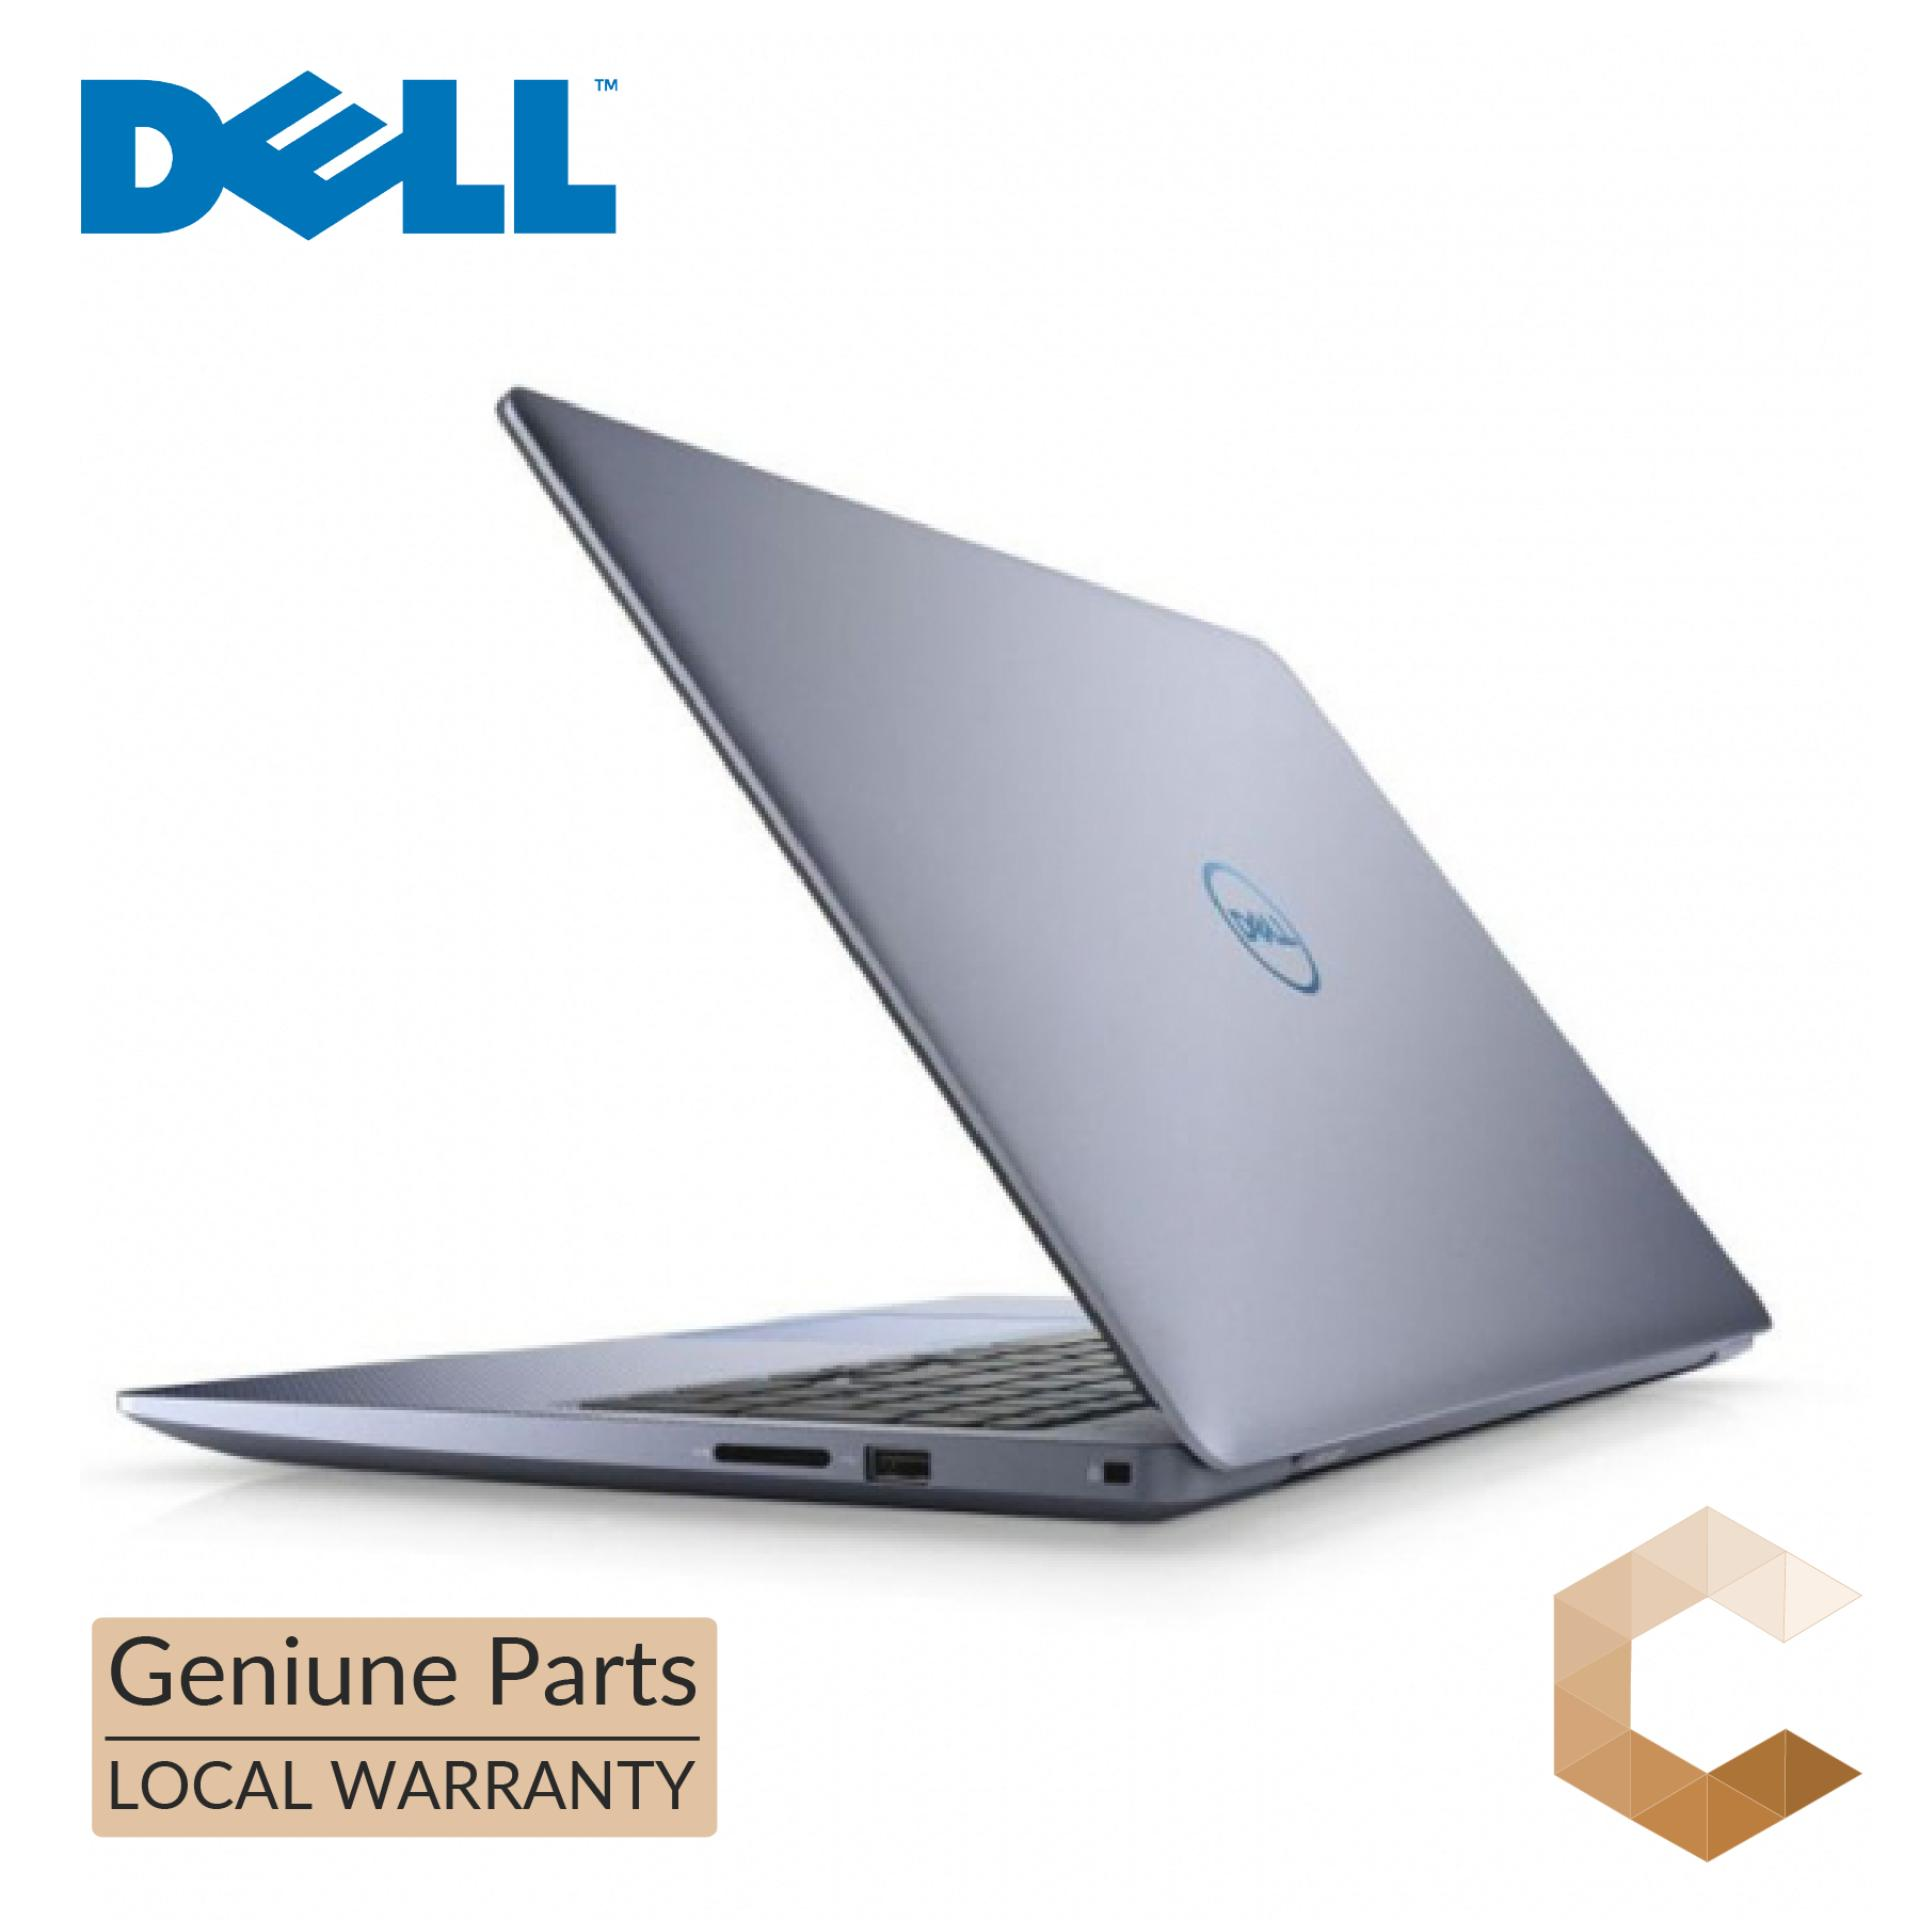 DELL NOTEBOOKS | G3-875814GL-W10-BLU